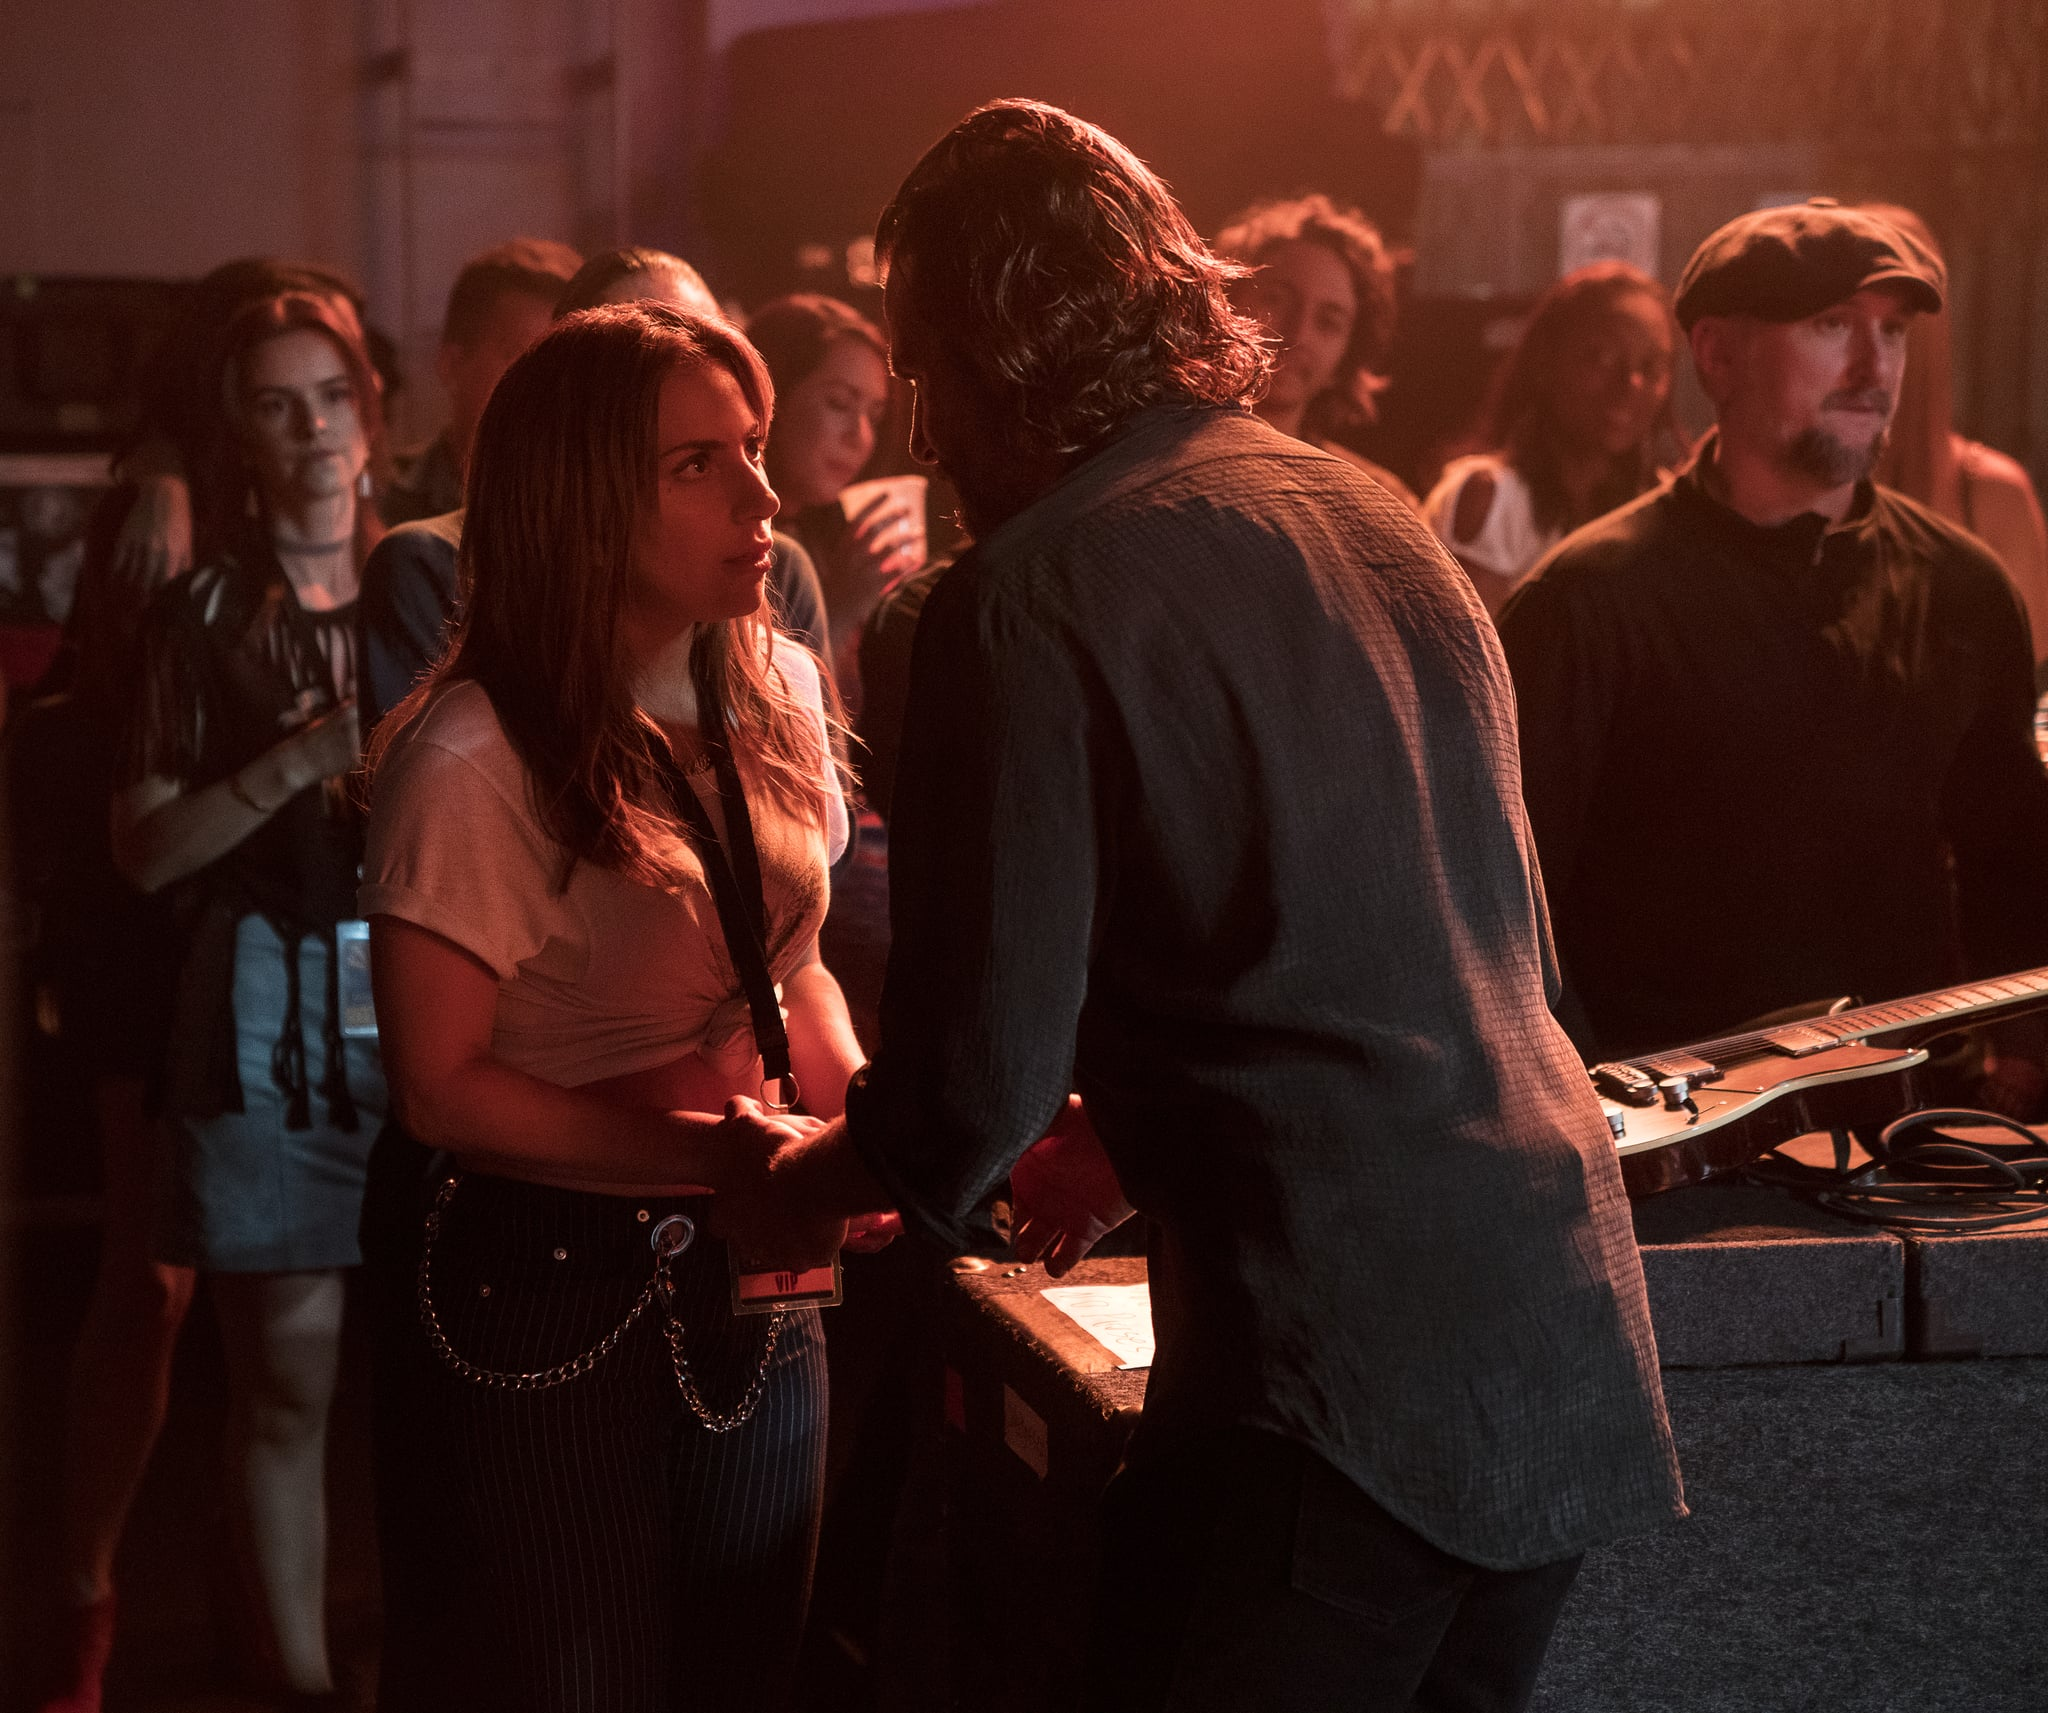 That Magic Moment Between Lady Gaga and Bradley Cooper in A Star Is Born? It Happened IRL